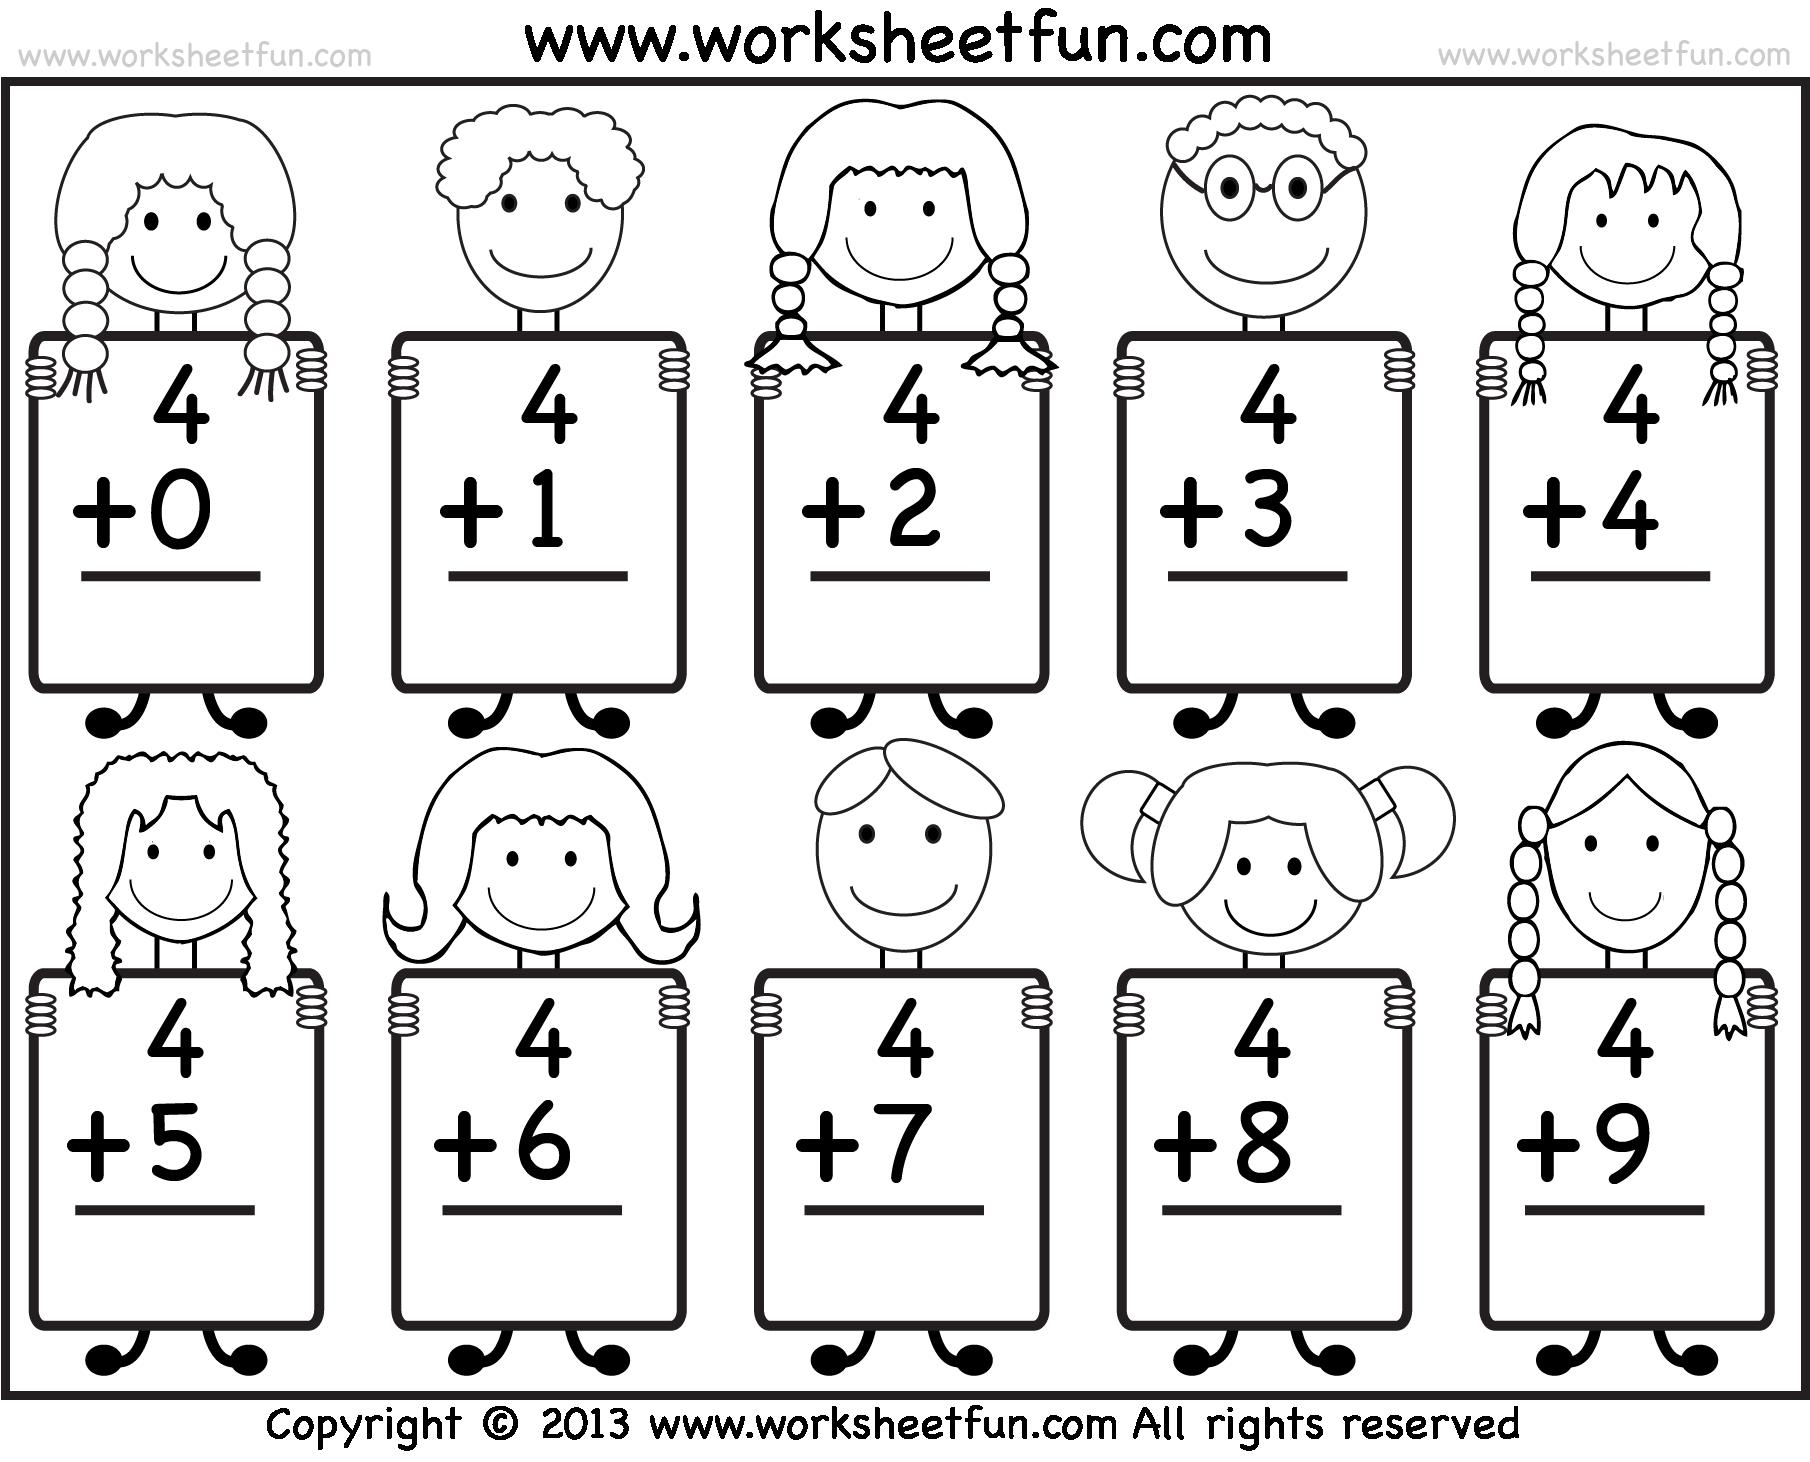 . PlusPng.com Kindergarten Free Math Worksheets For Kindergarten ~ Koogra  free-printable-math-worksheets- - Kindergarten Math PNG Black And White